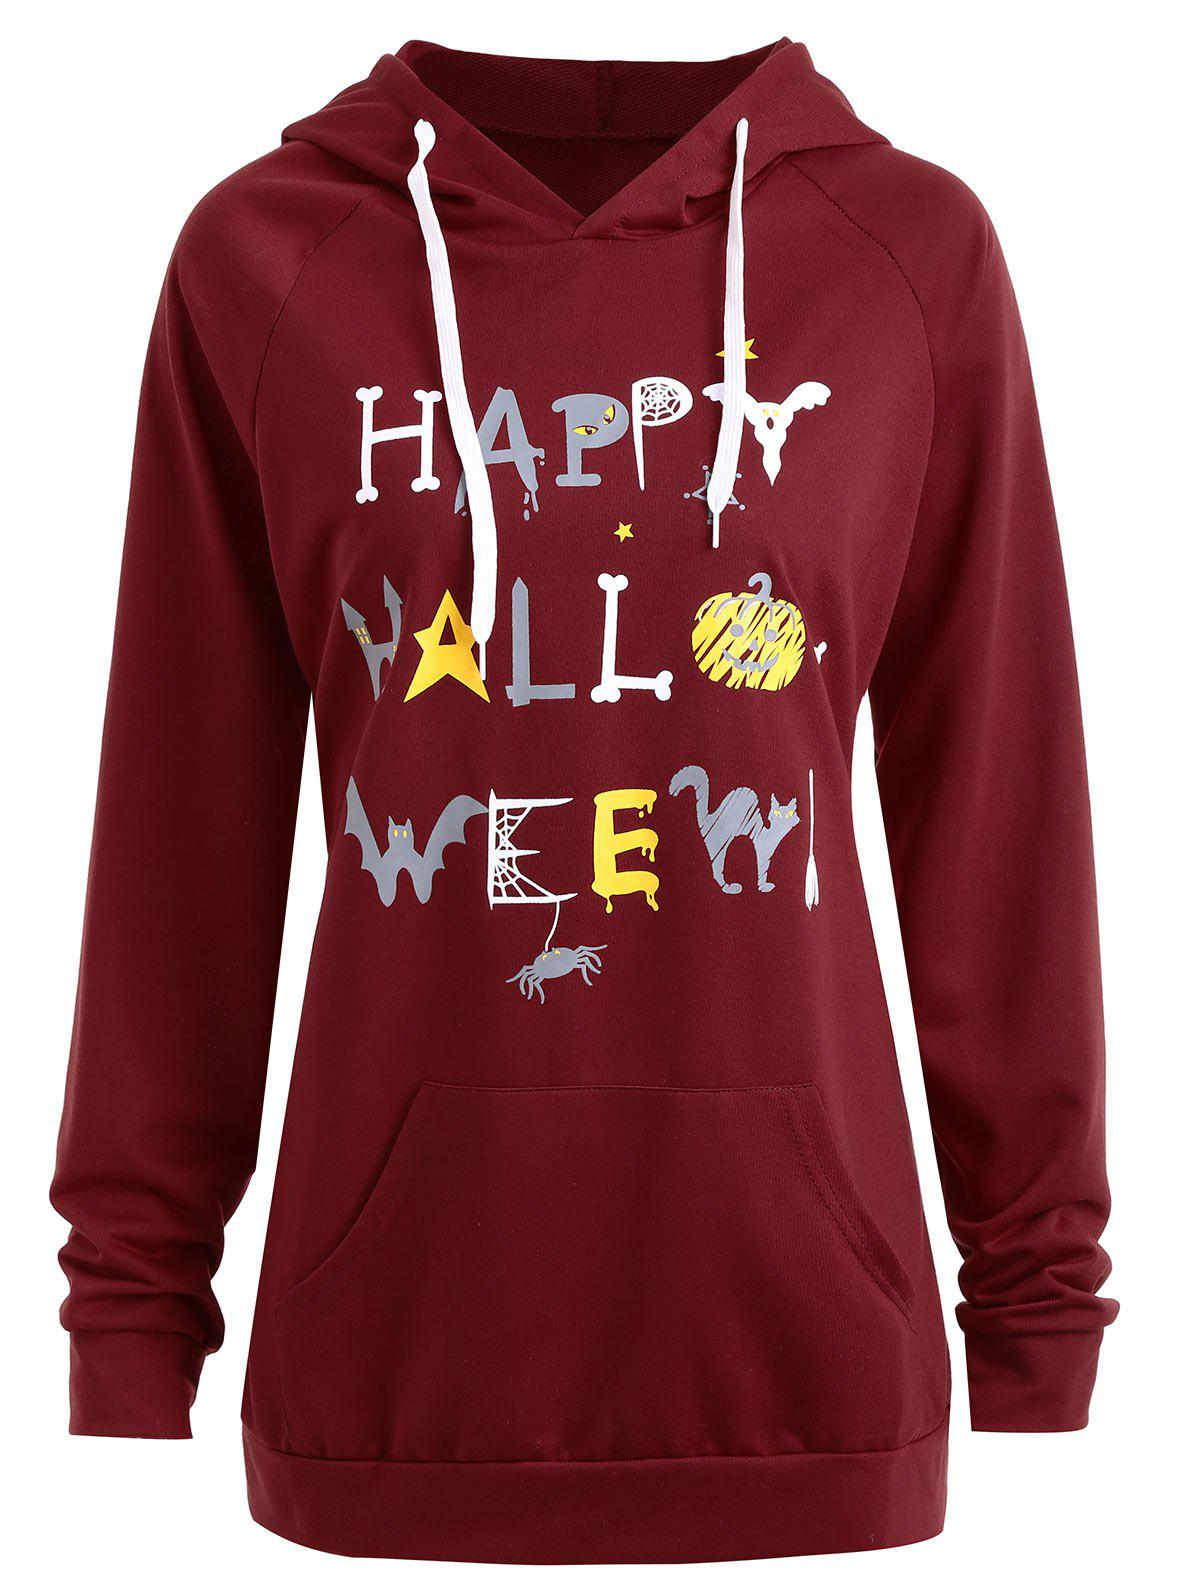 Happy Halloween Pumpkin Plus Size Hoodie plus size halloween pumpkin spatter print hoodie